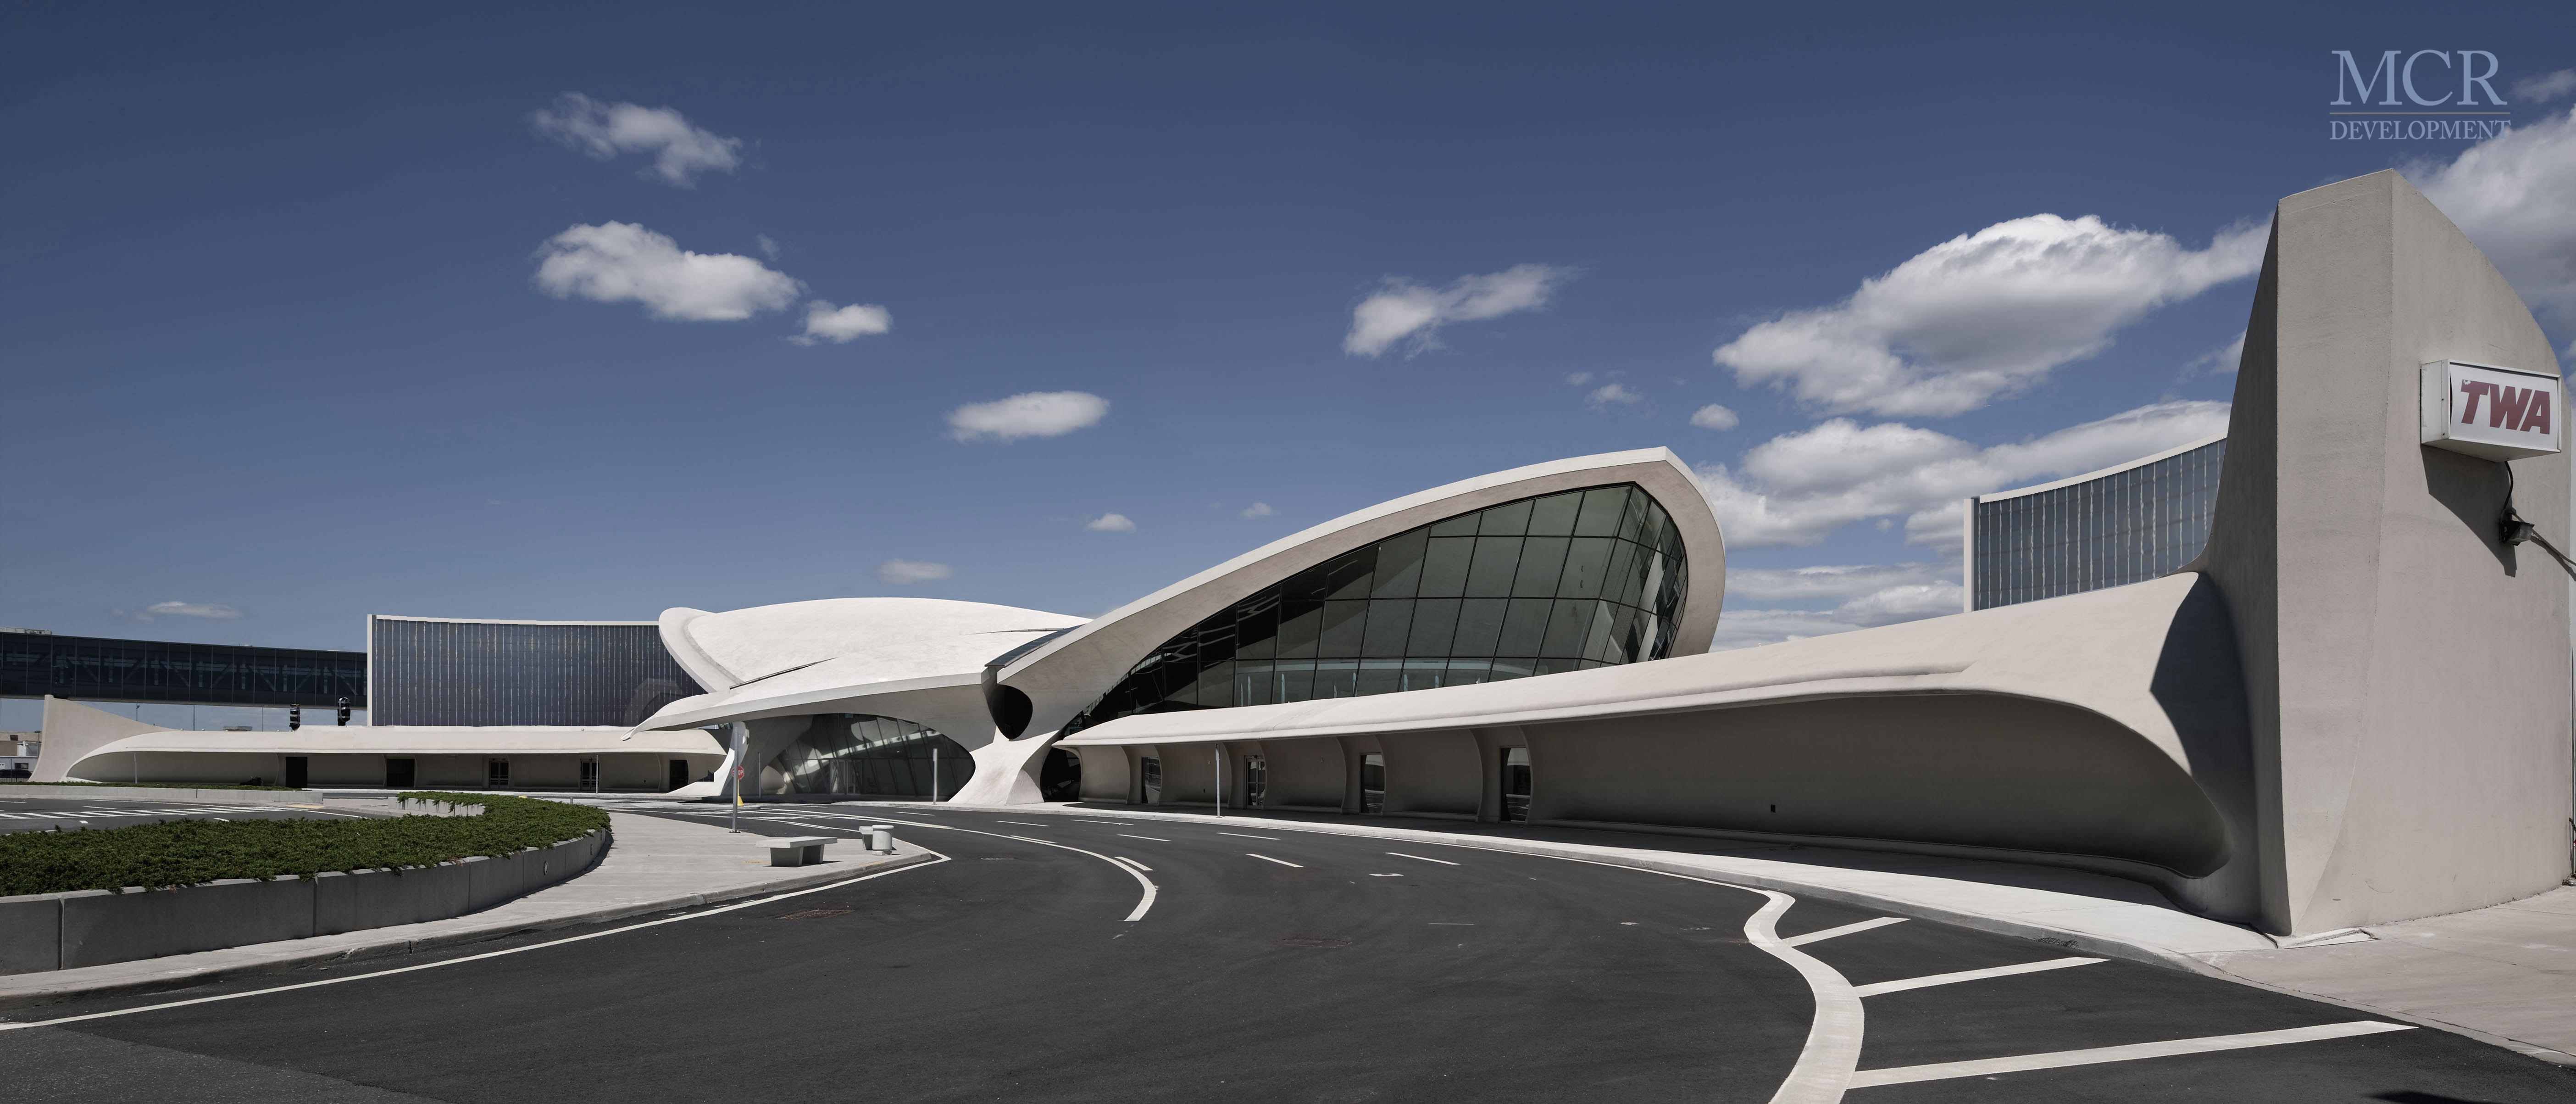 Rendering of the TWA Flight Center Hotel. Via MCR Development.